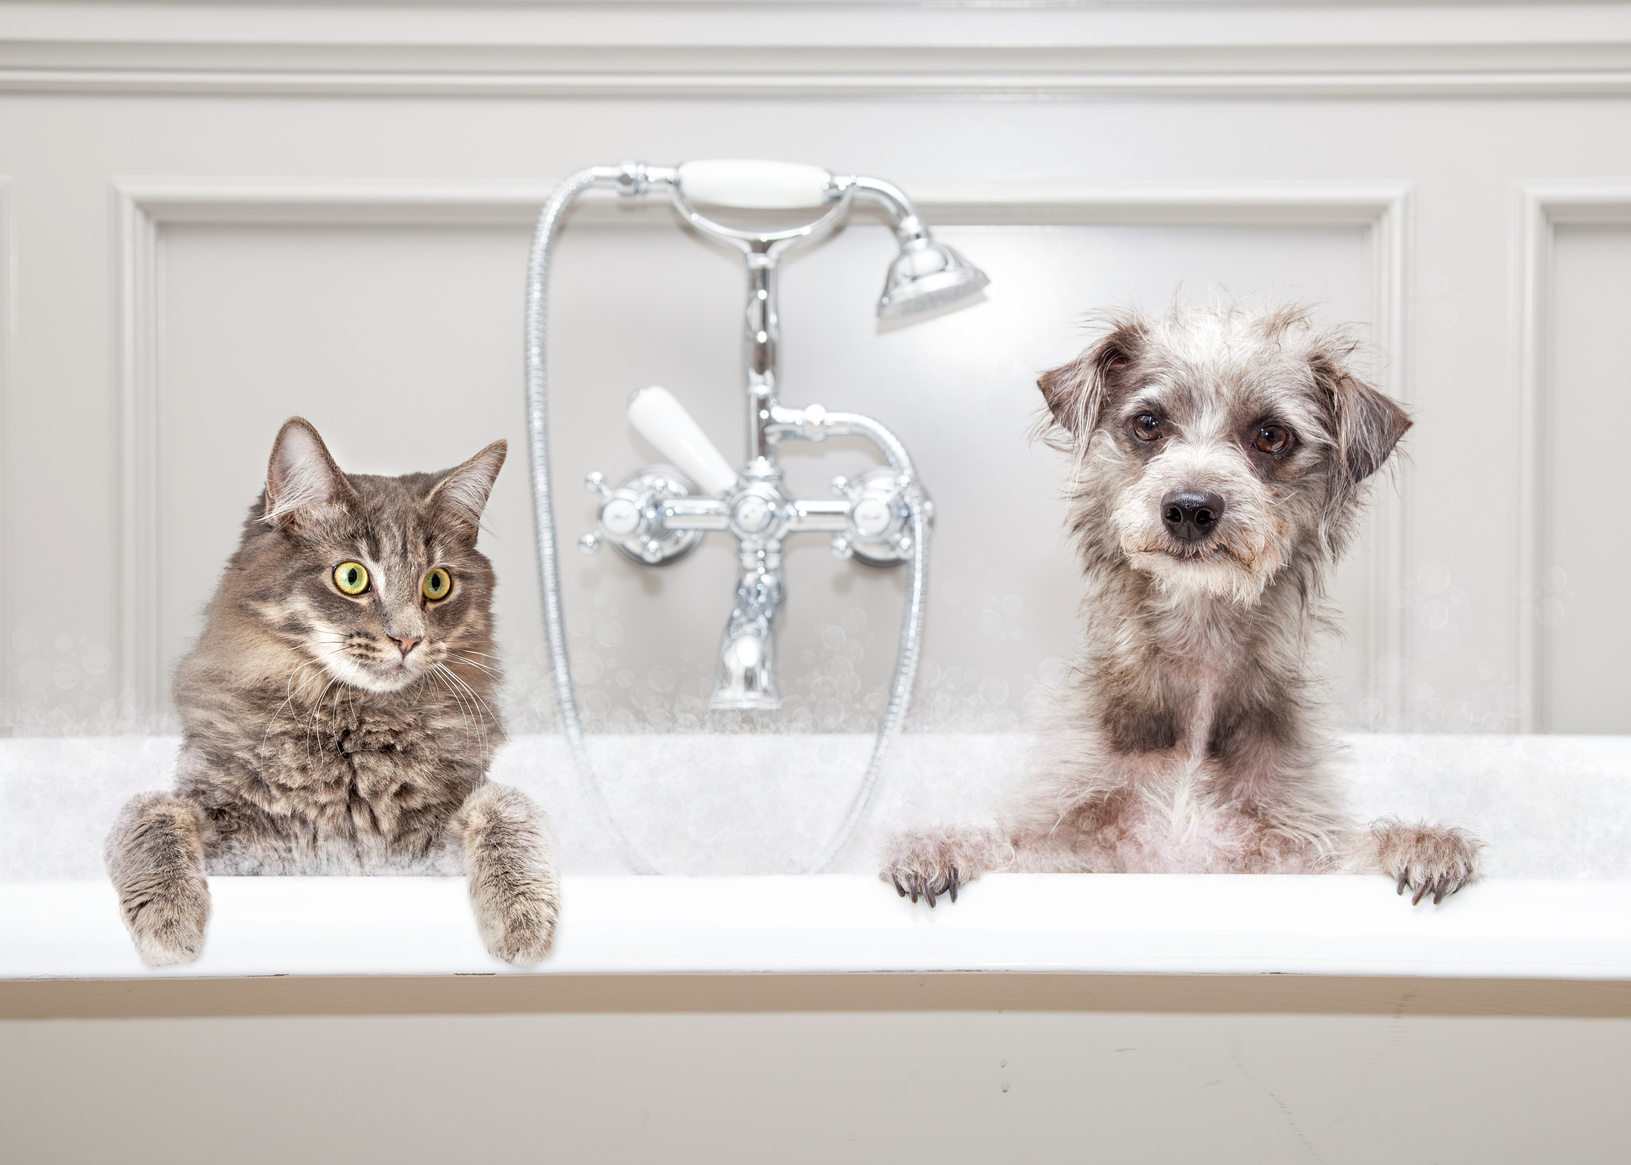 Gray color cat and dog sitting together in a luxury tub in an upscale bathroom